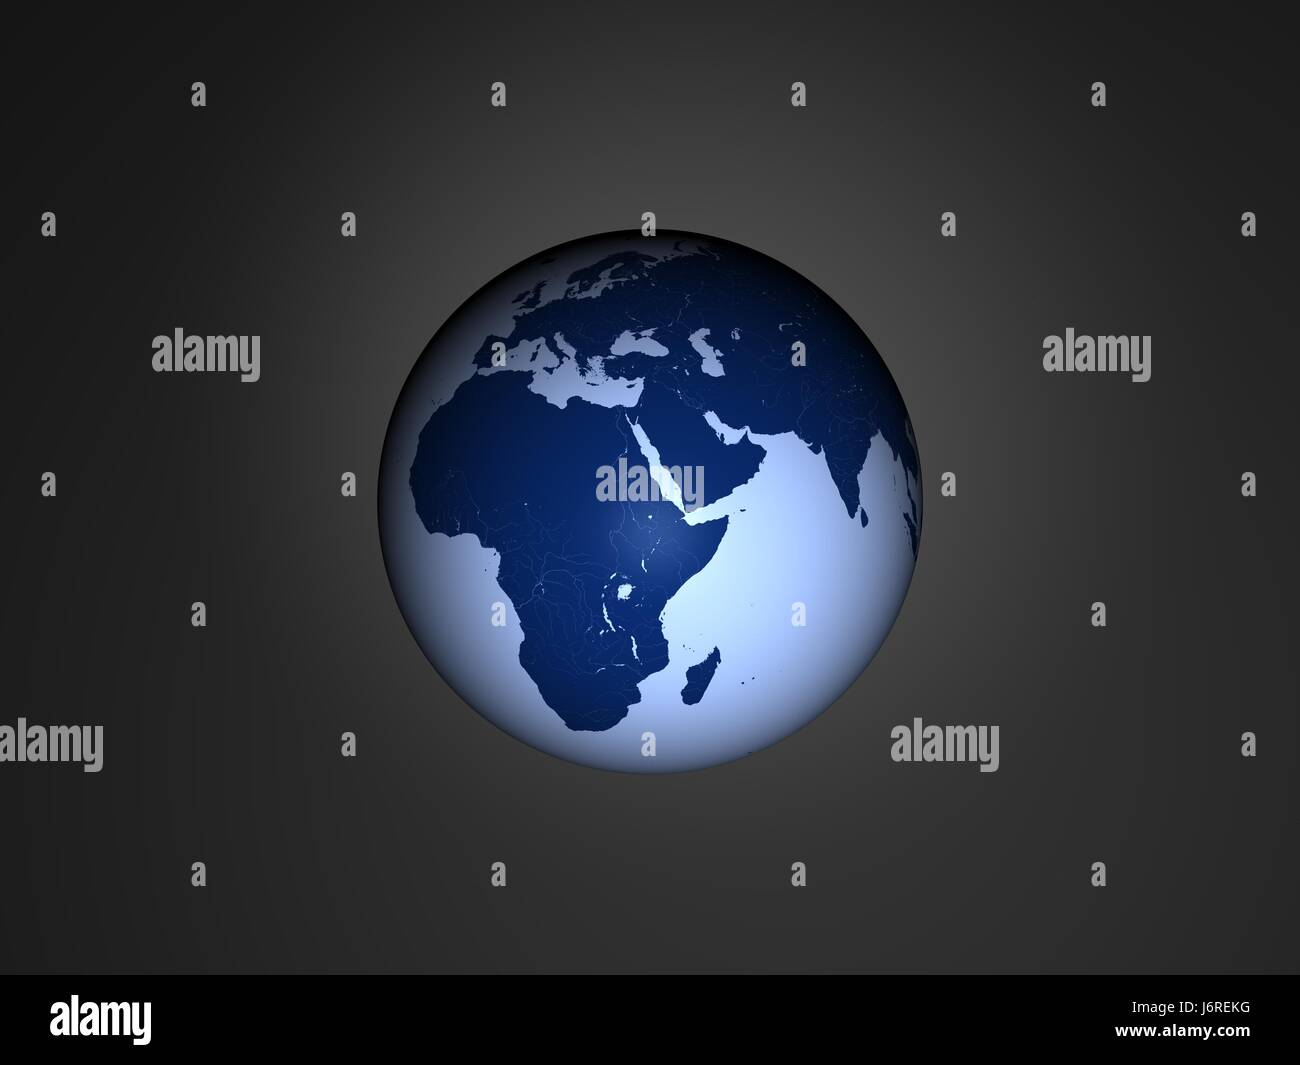 space africa face europe globe planet earth world double africa atlas - Stock Image